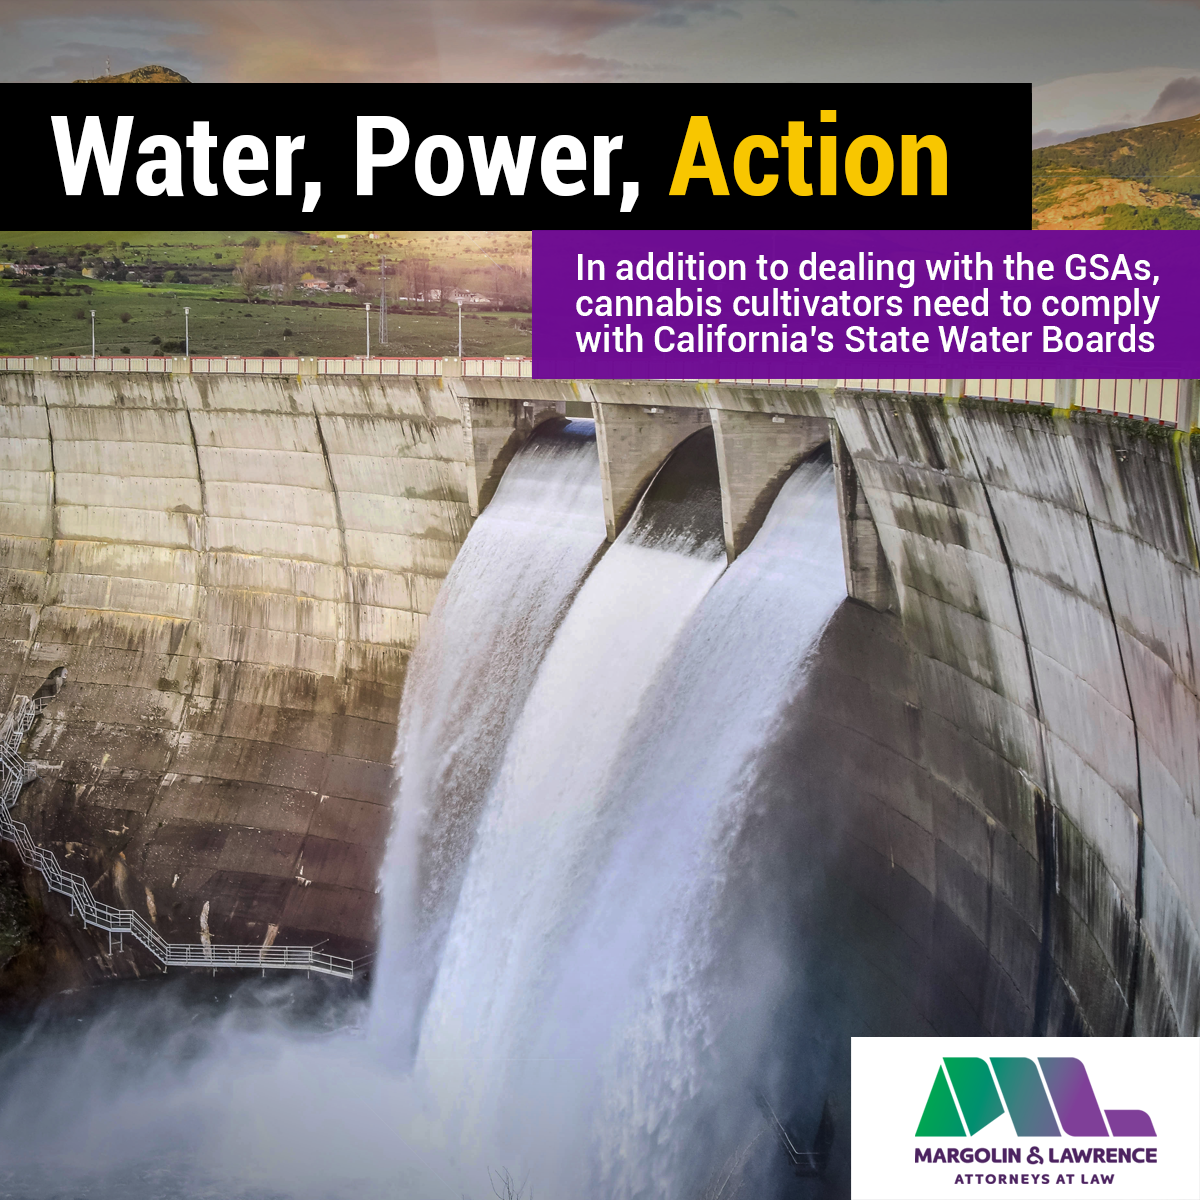 Water, Power, Action